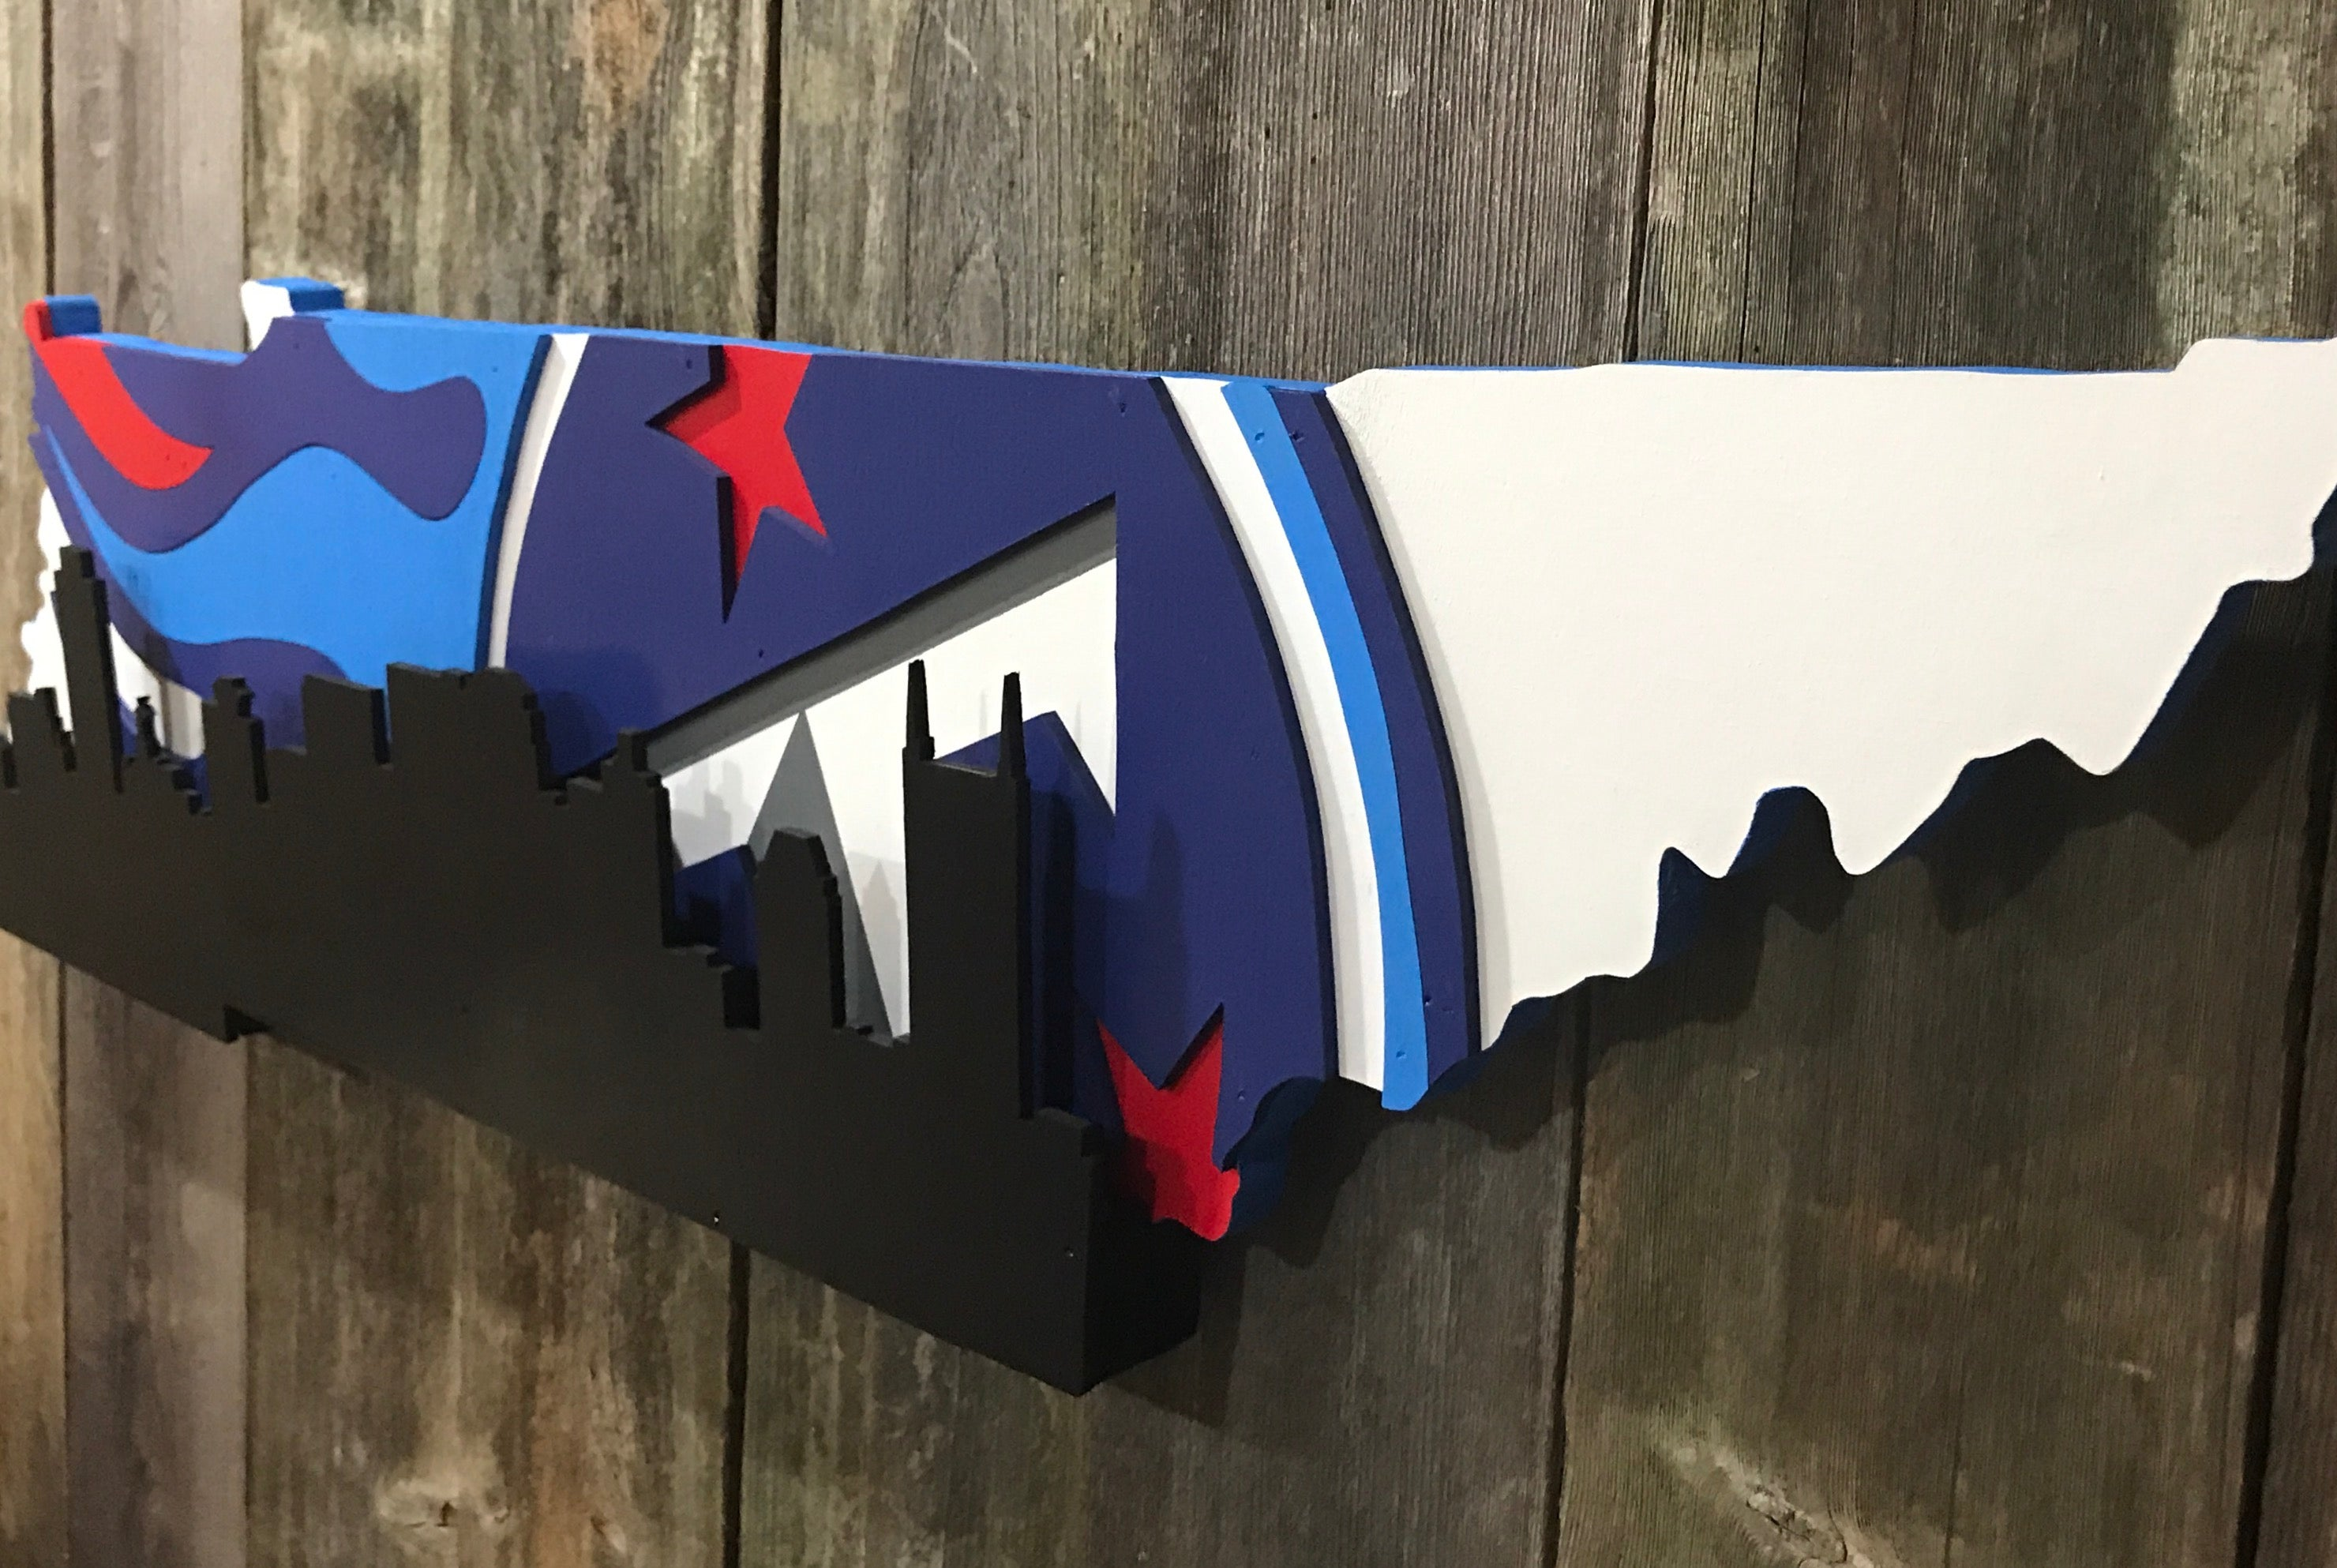 Tennessee Titans with Nashville skyline